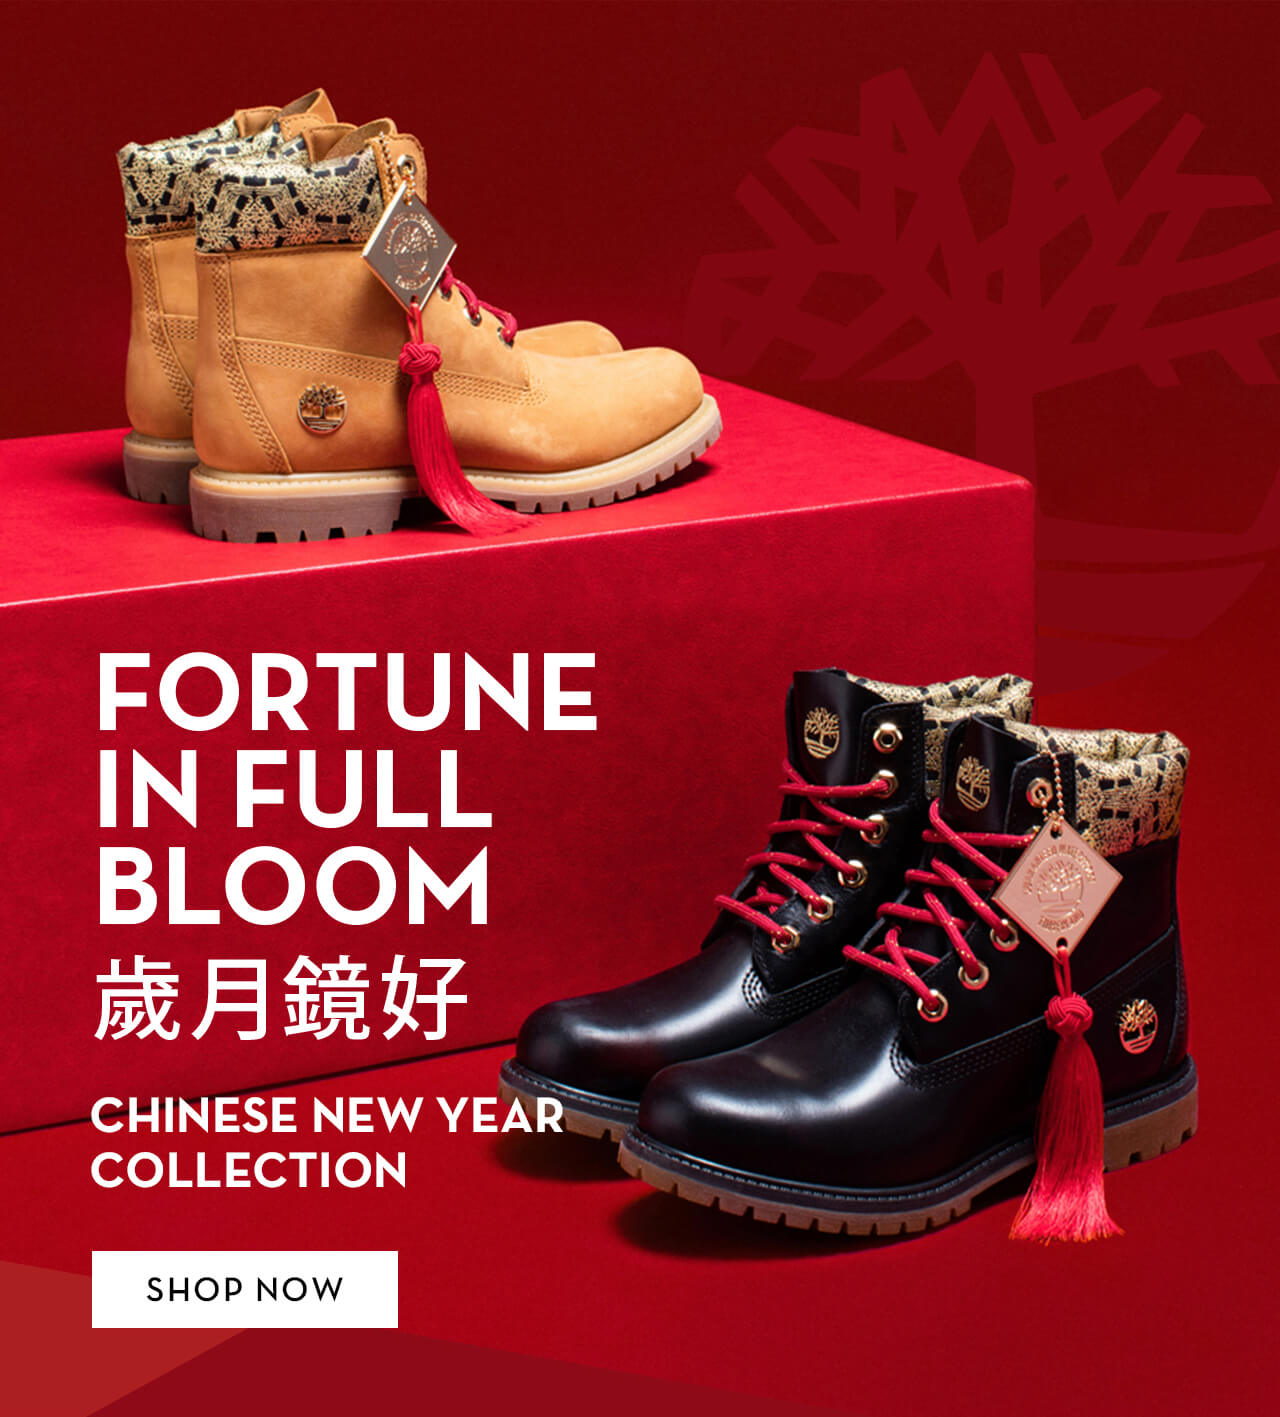 Fortune In Full Bloom Chinese New Year Collection Shop Now